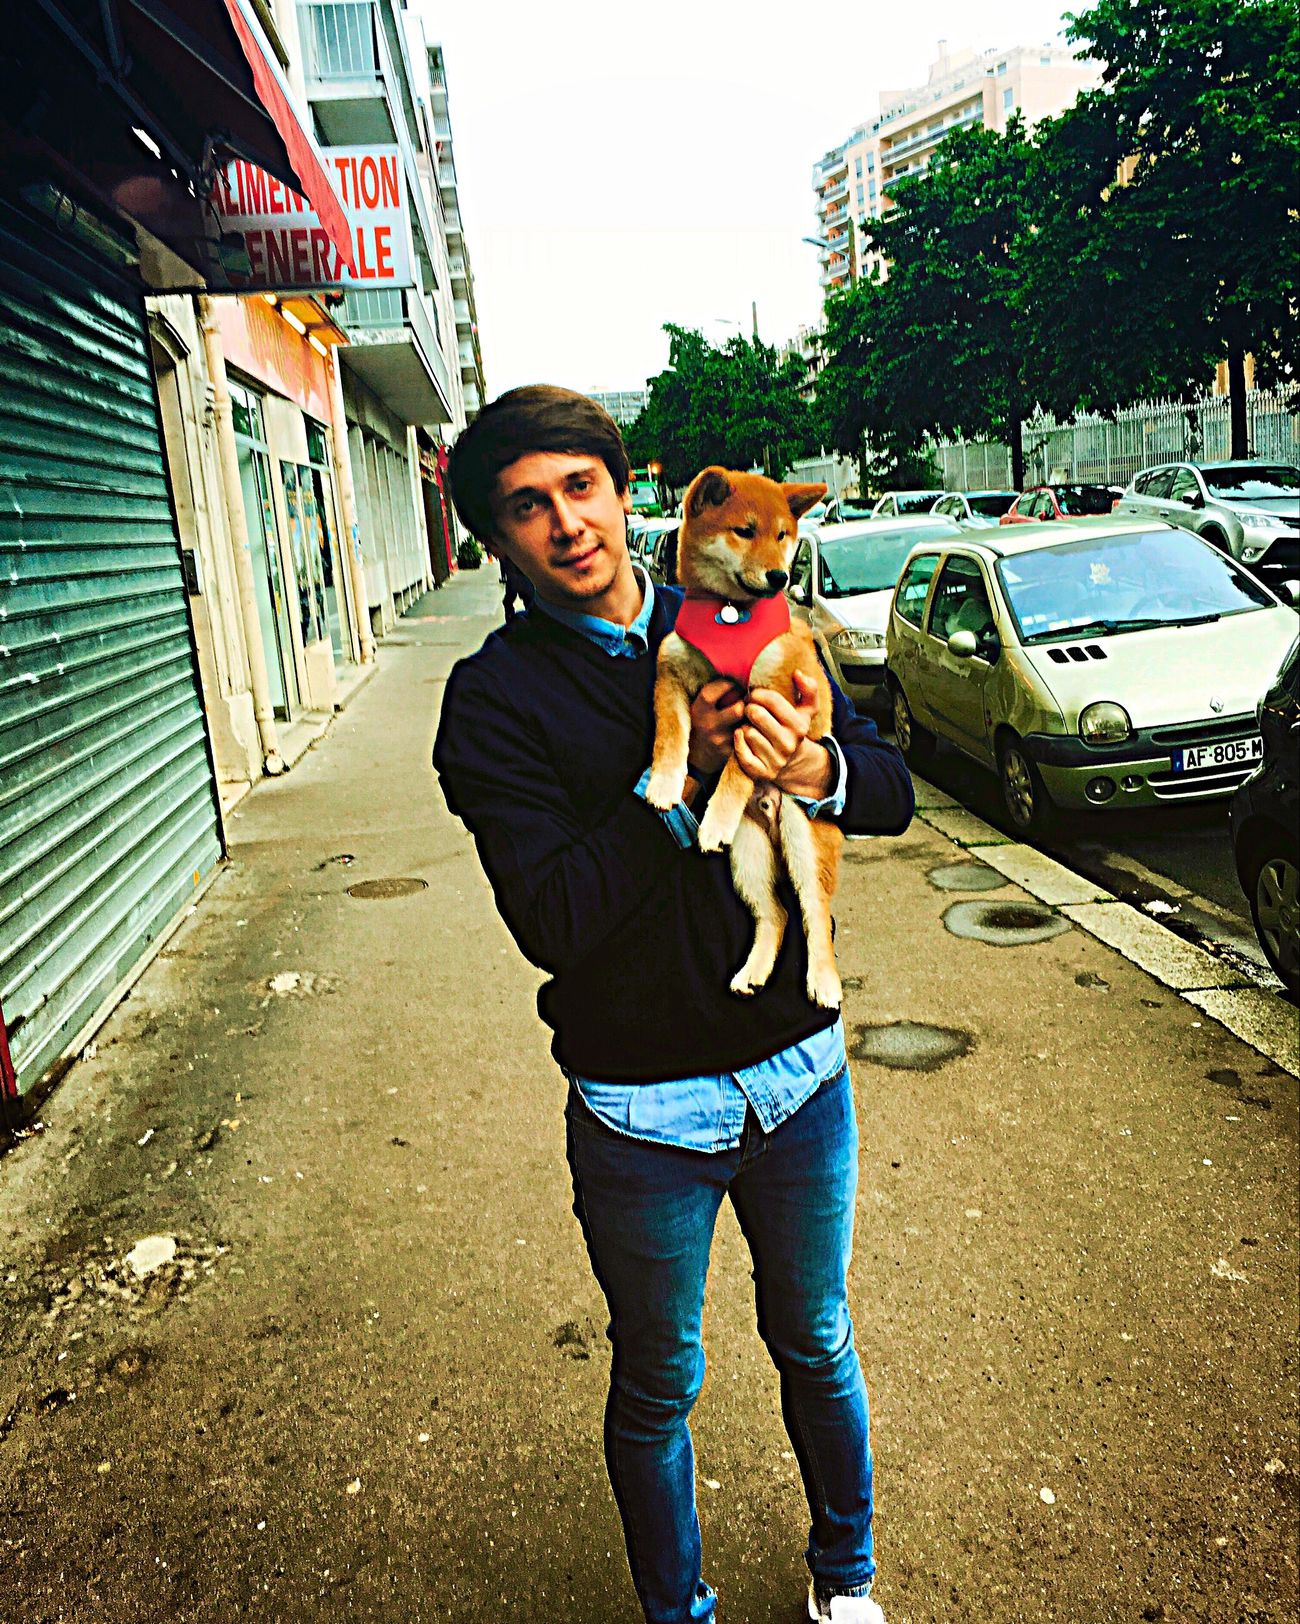 Paris France Paris, France  Beautiful Dog Dog Love Party Fashion Cool Outfit Chill Model Mode Models Modeling Shooting Vogue Model Shoot Photography Photo Like Instalove Vintage Style Eiffel Tower Euro2016